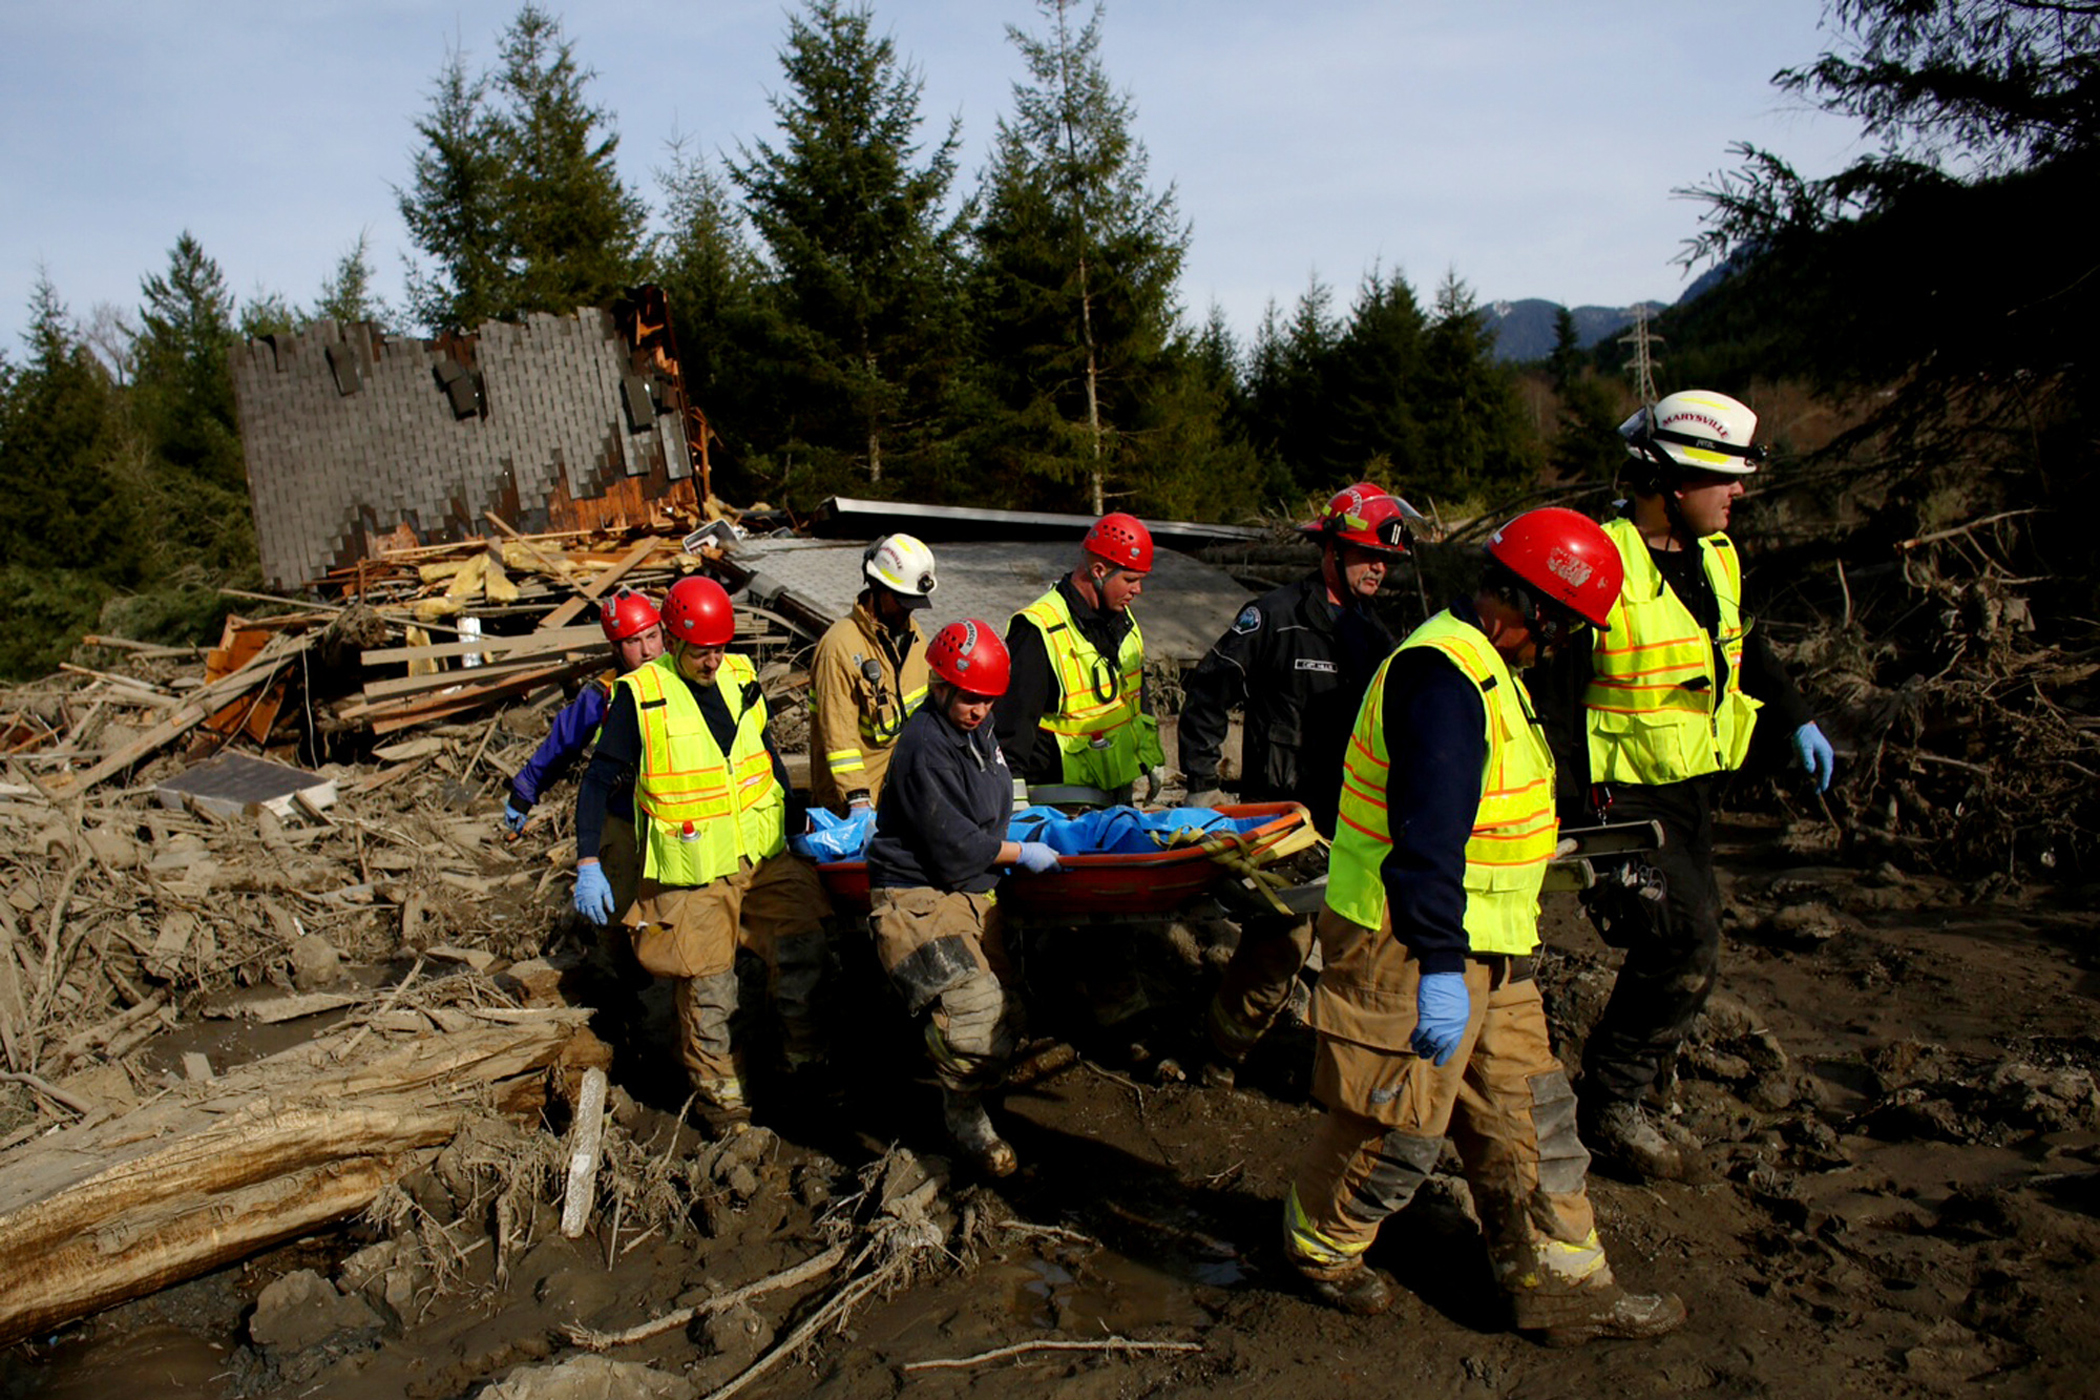 A search and rescue team brings out the tarp-covered body of a victim of Saturday's mudslide, Monday, March 24, 2014, near Oso, Wash.